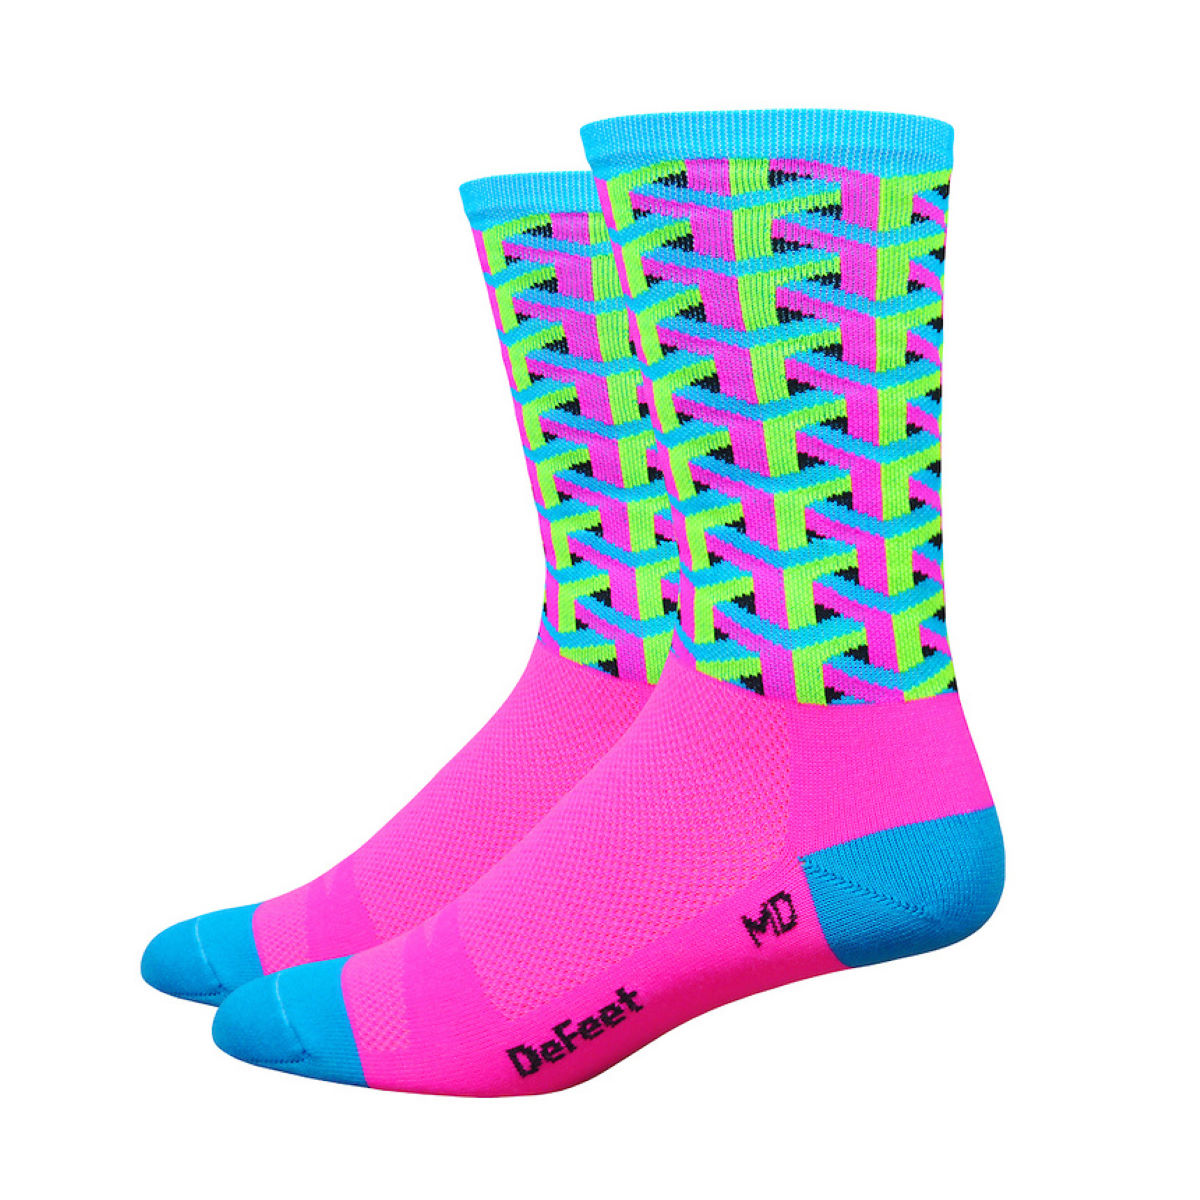 Chaussettes DeFeet Framework - Small Rose Chaussettes vélo